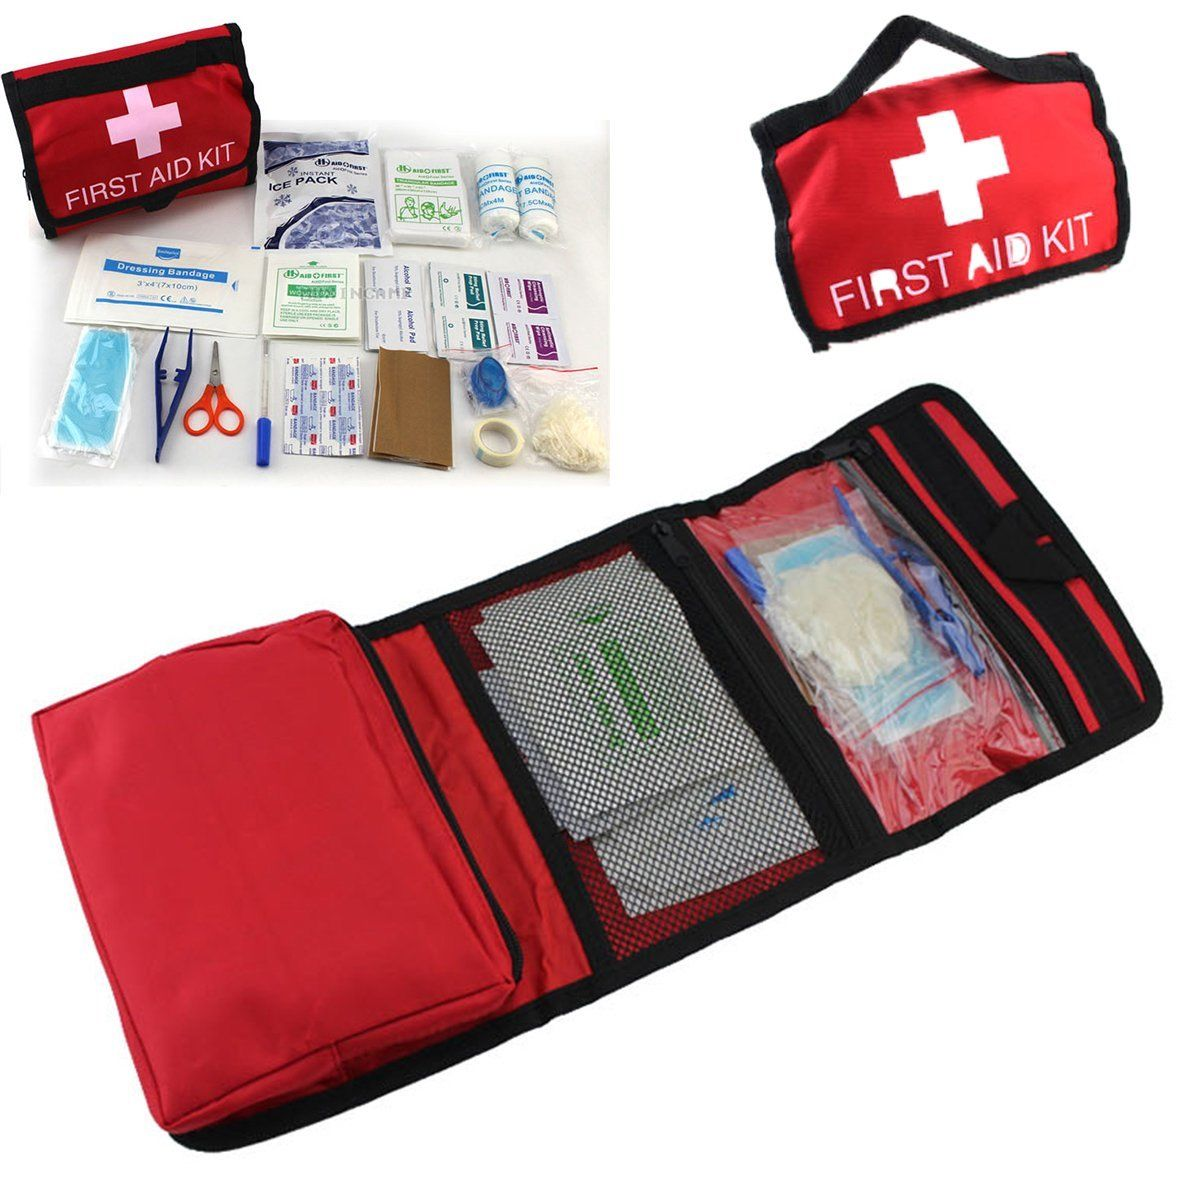 1set Outdoor Wilderness Survival First Aid Kit Medical Bag Rescuing Equipment Camping Hiking Medical Emergency Treatment Packs 10 in 1 emergency survival gear professional first aid kit outdoor camping hiking survival tools whistle flashlight tactical pen